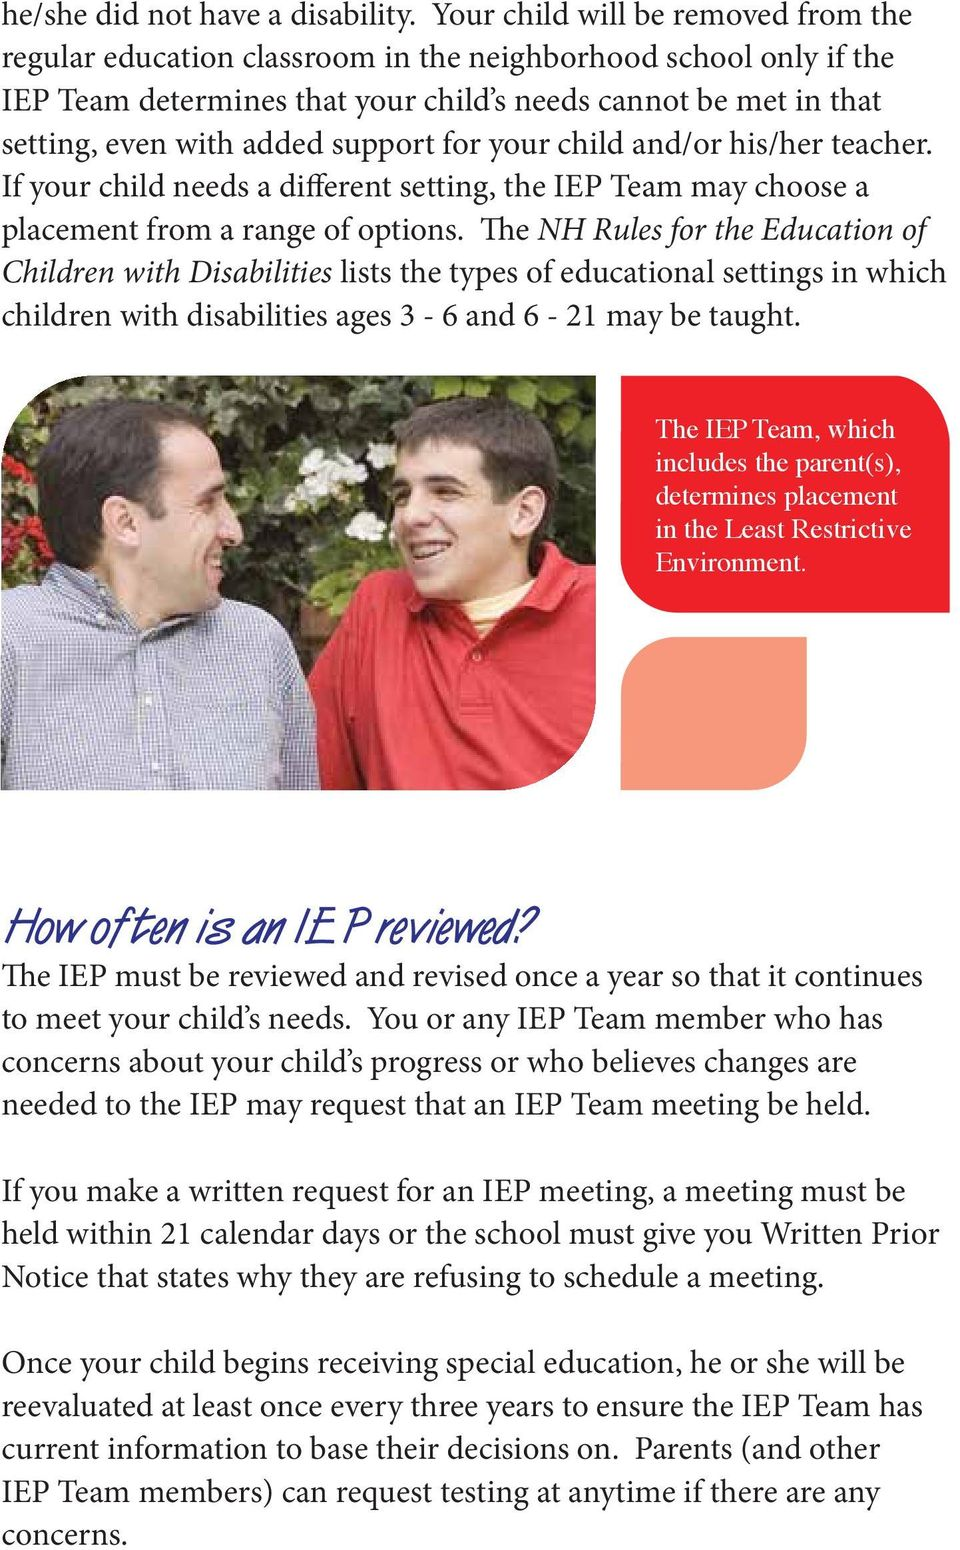 support for your child and/or his/her teacher. If your child needs a different setting, the IEP Team may choose a placement from a range of options.